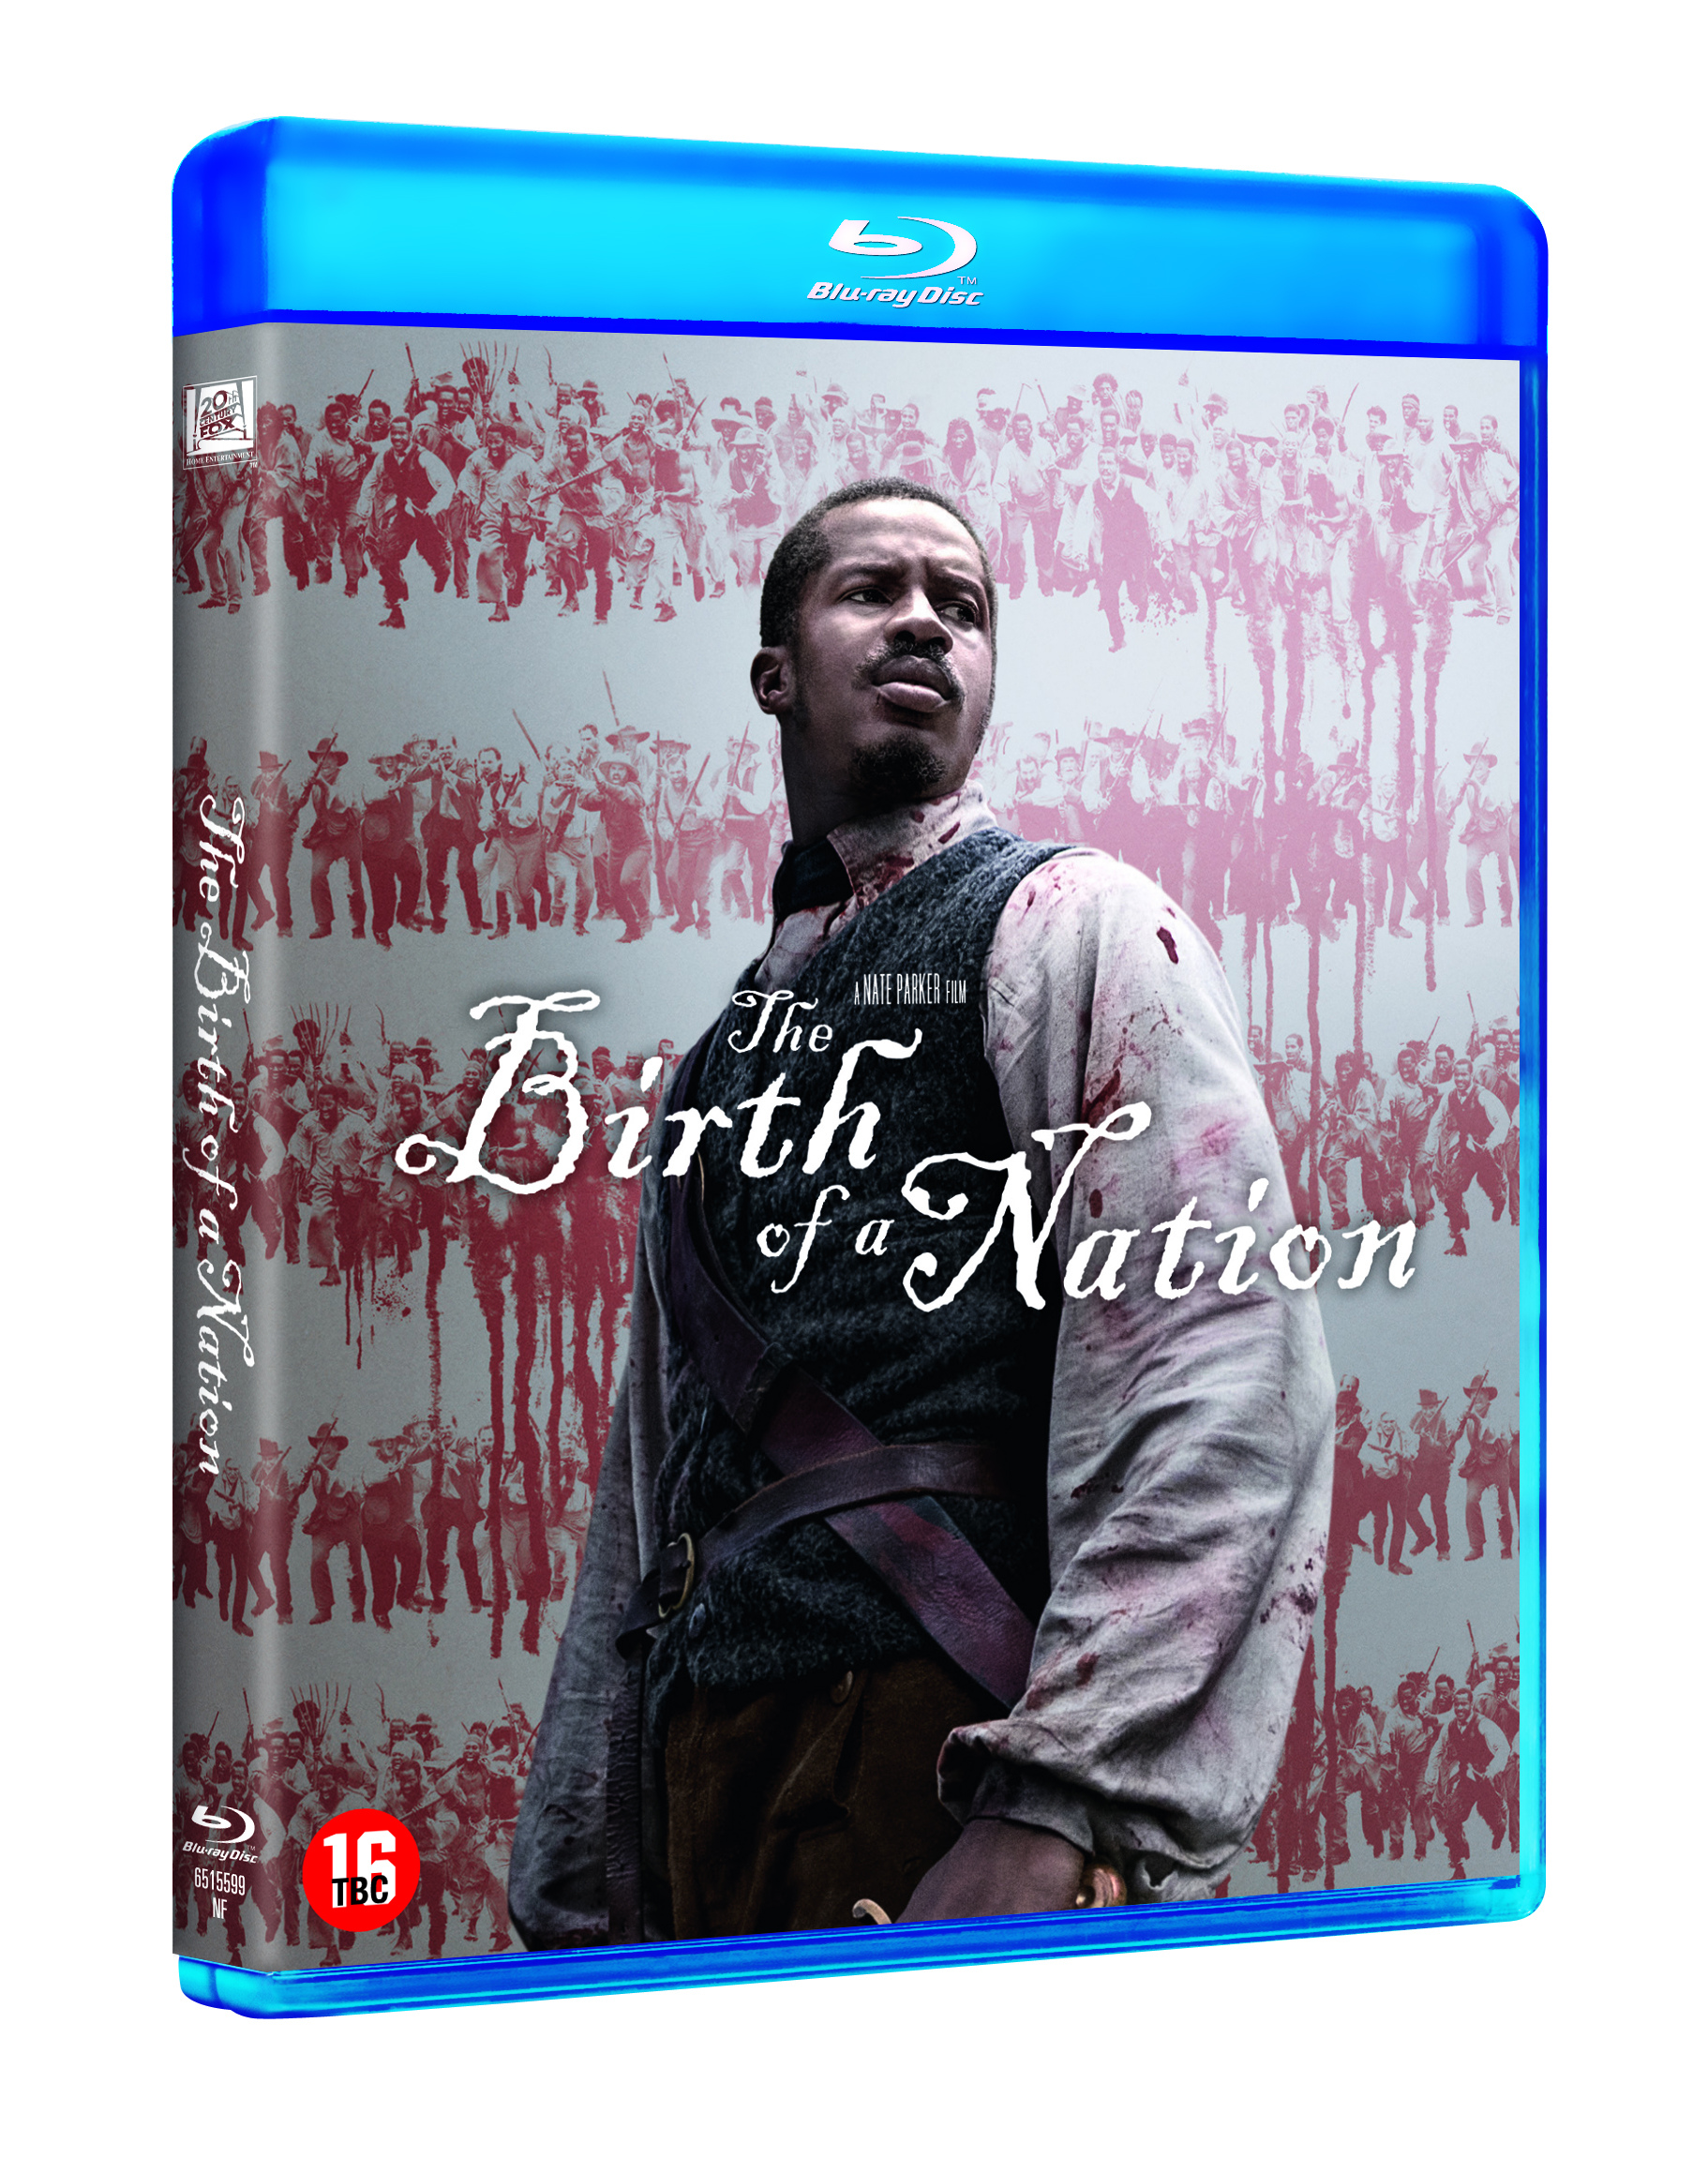 Birth of a Nation blu-ray